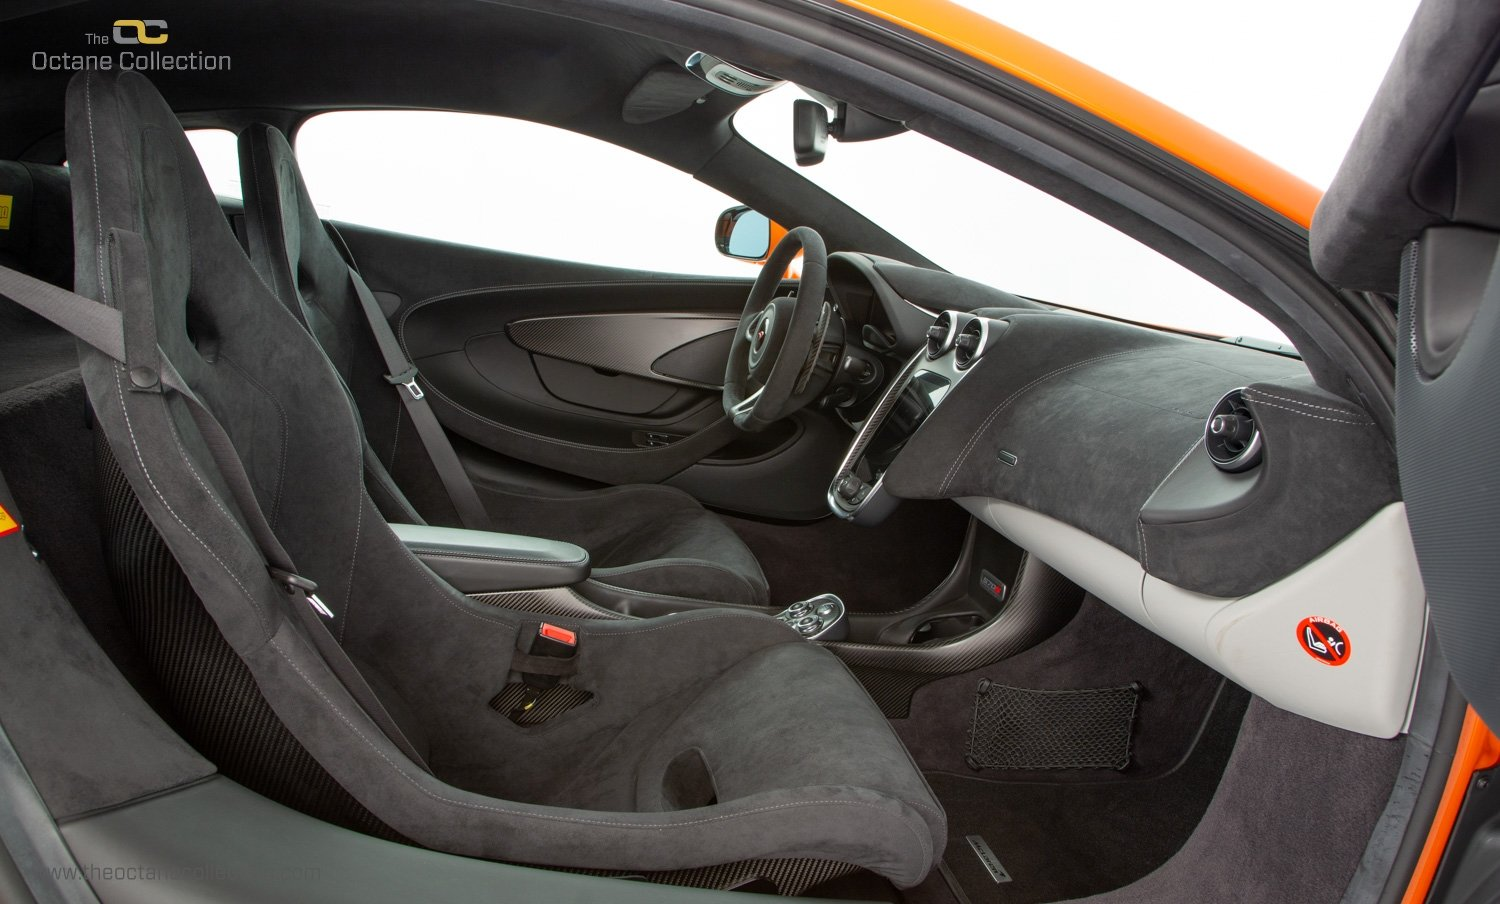 2017 MCLAREN 570S TRACK PACK // LHD // 1K MILES // VAT QUALIFYING For Sale (picture 11 of 17)